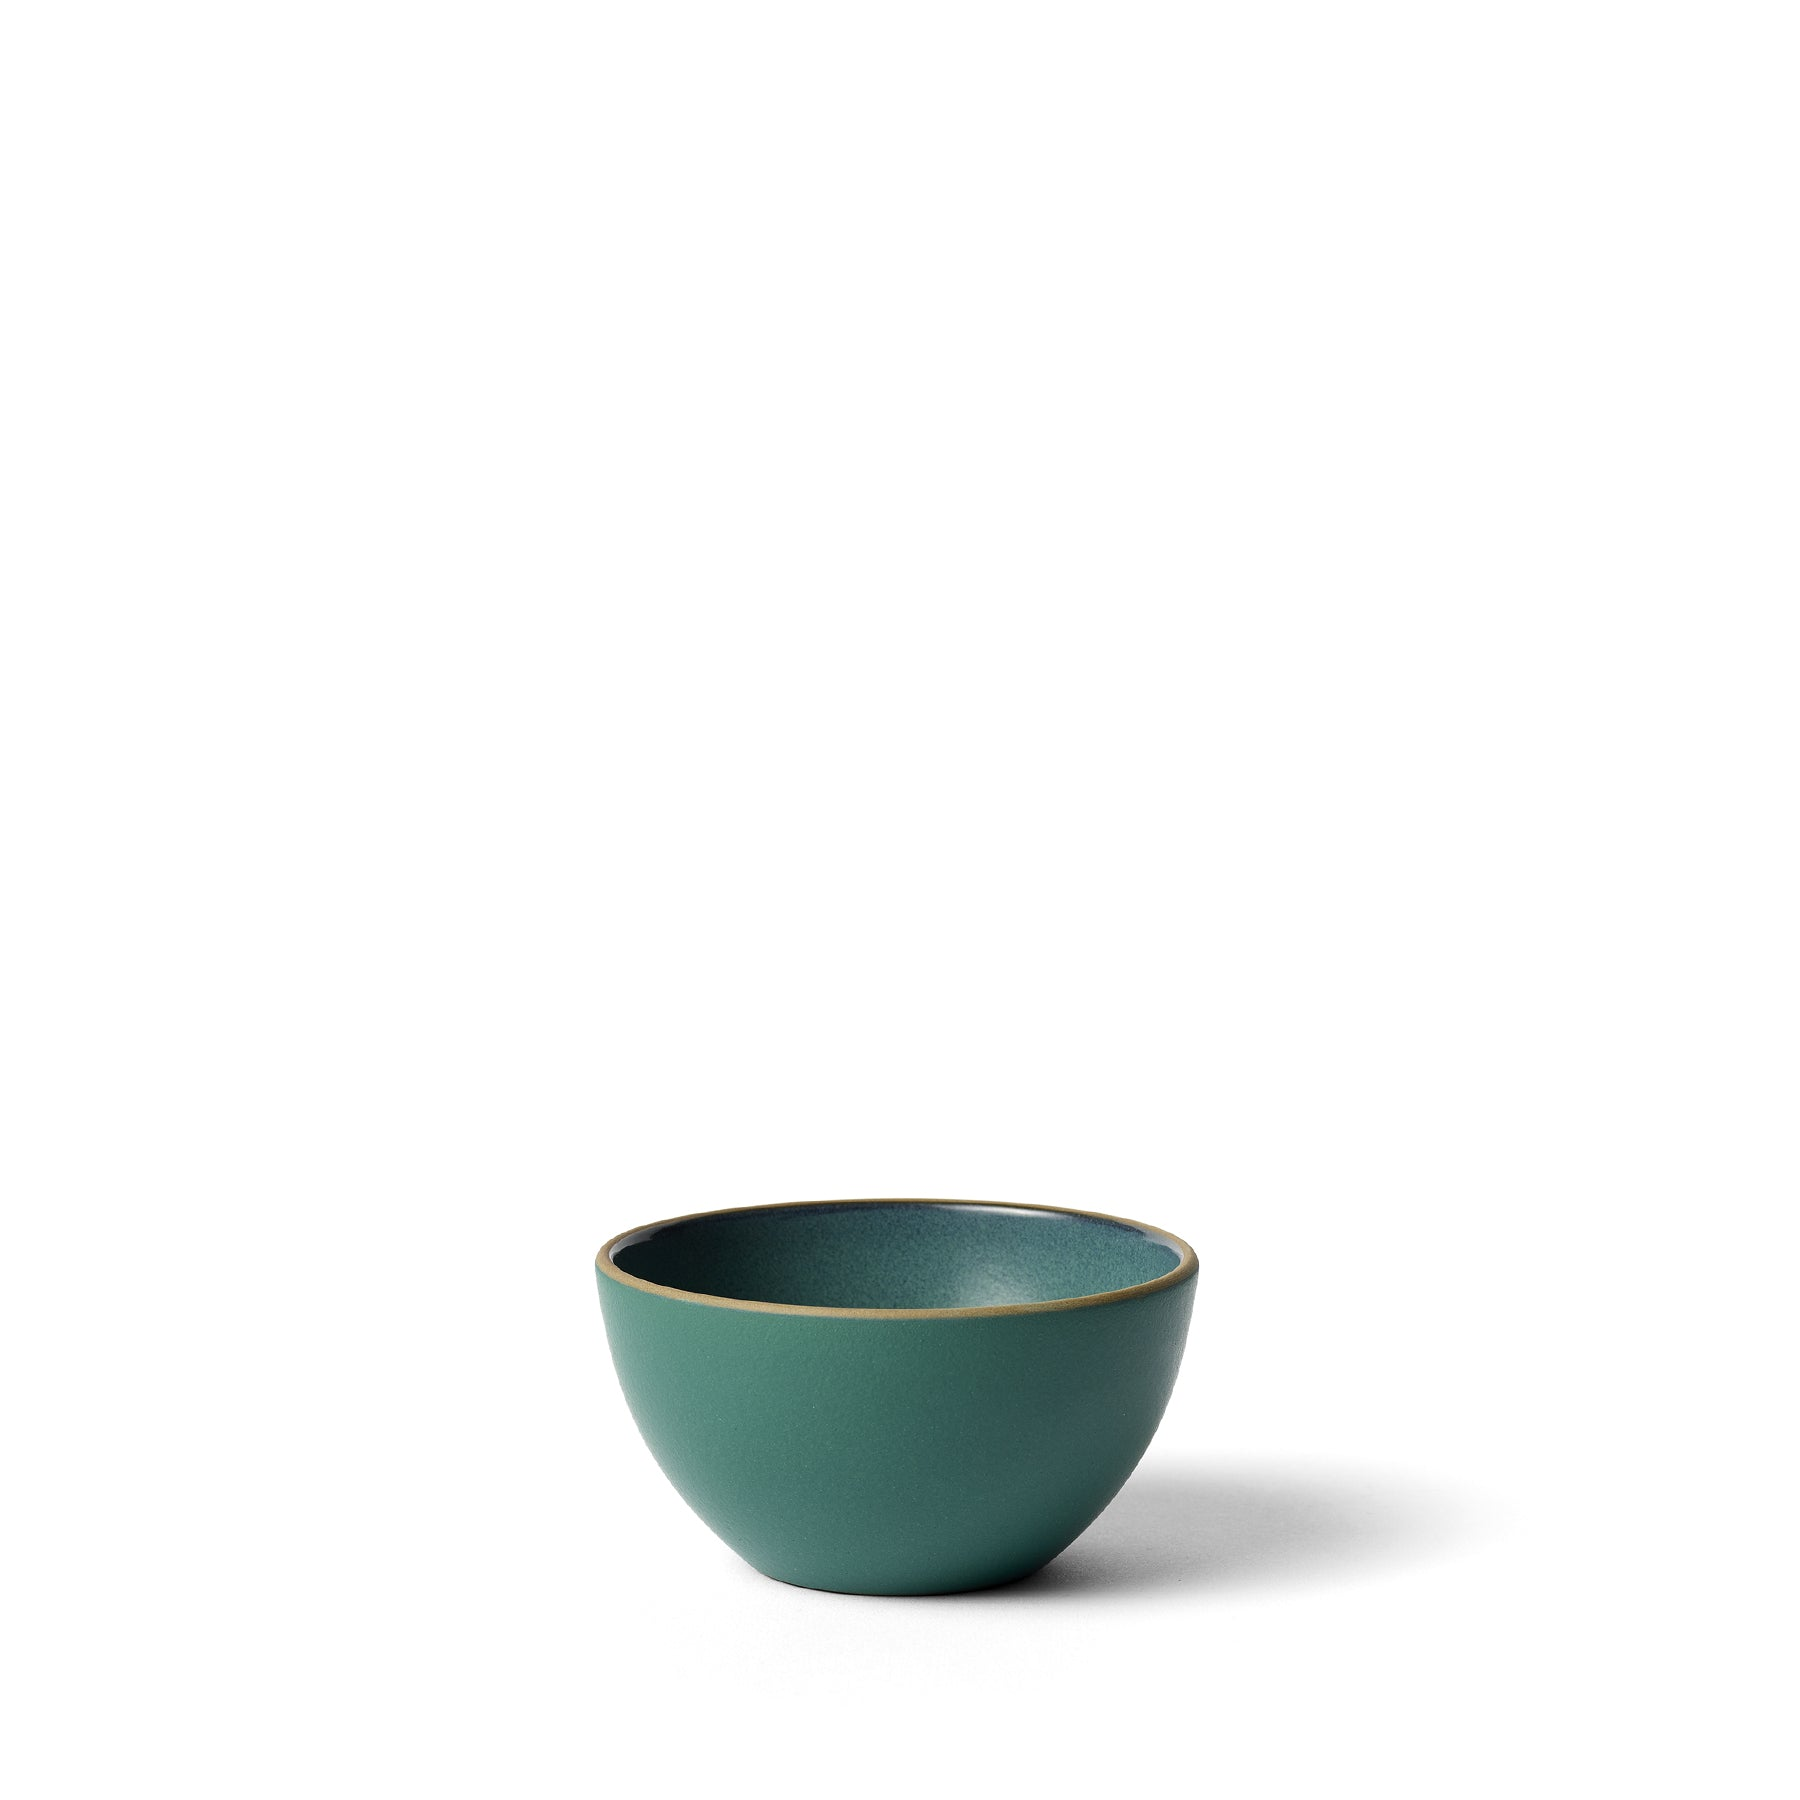 Dessert Bowl in Emerald Gloss/Emerald Zoom Image 1